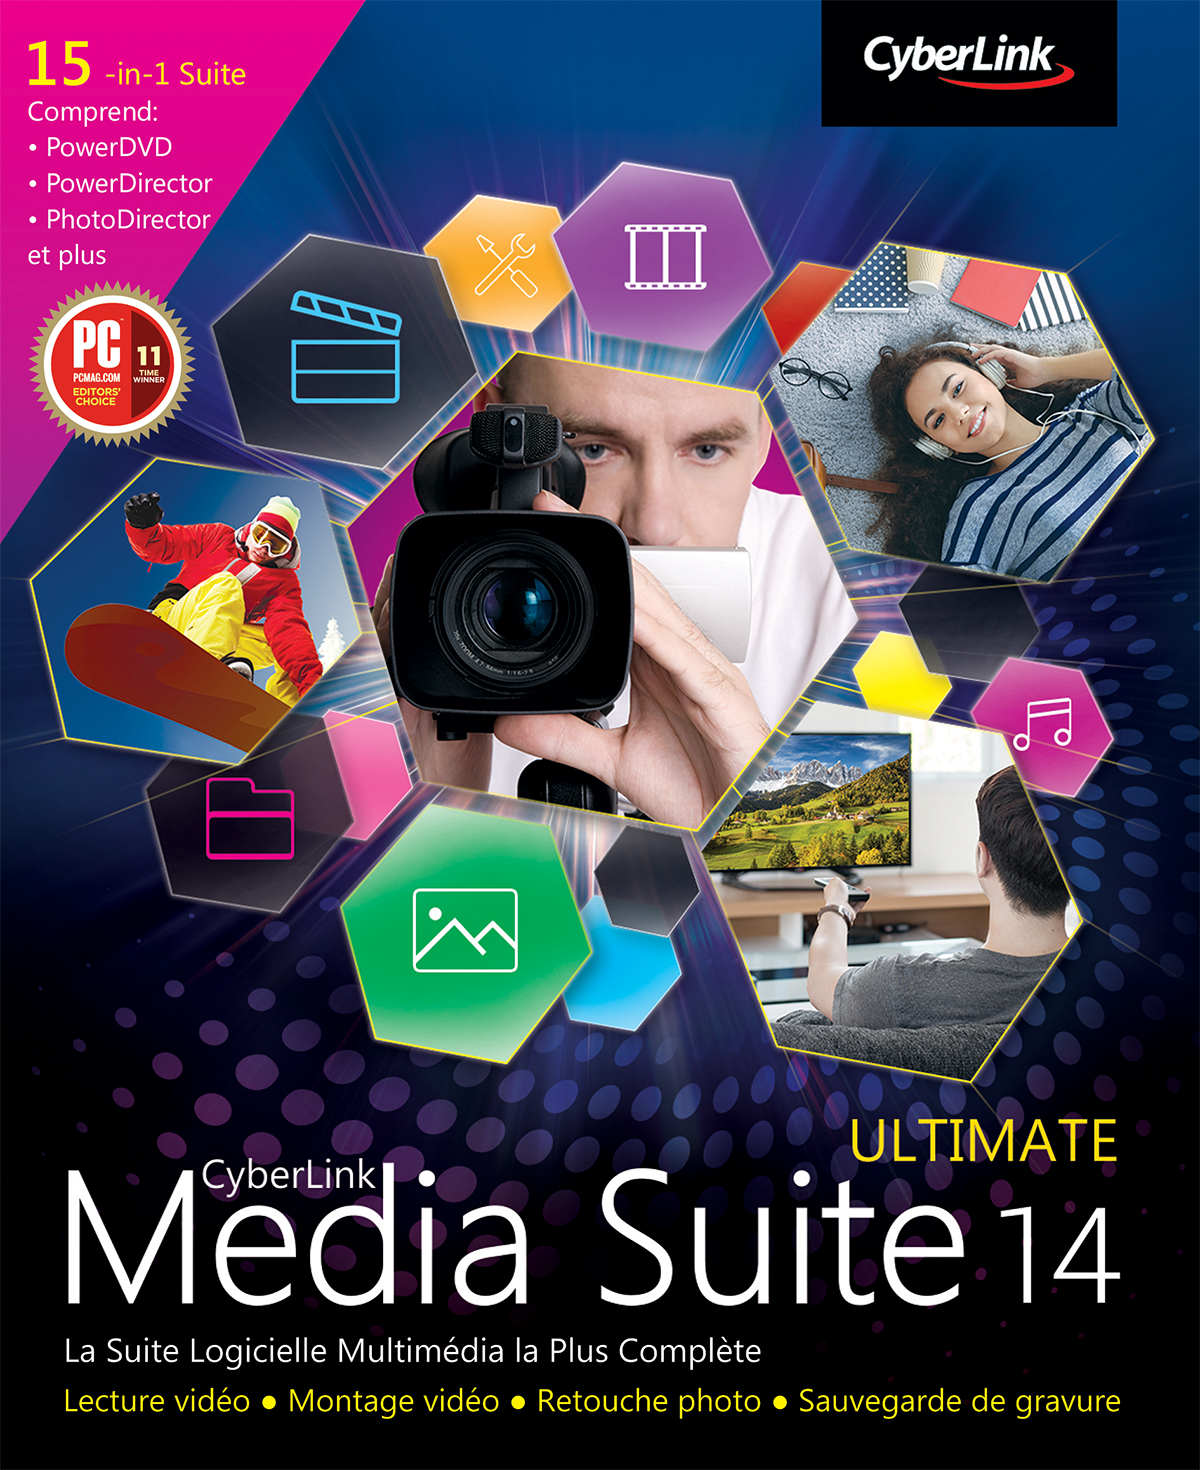 cyberlink-media-suite-14-ultimate-telechargement